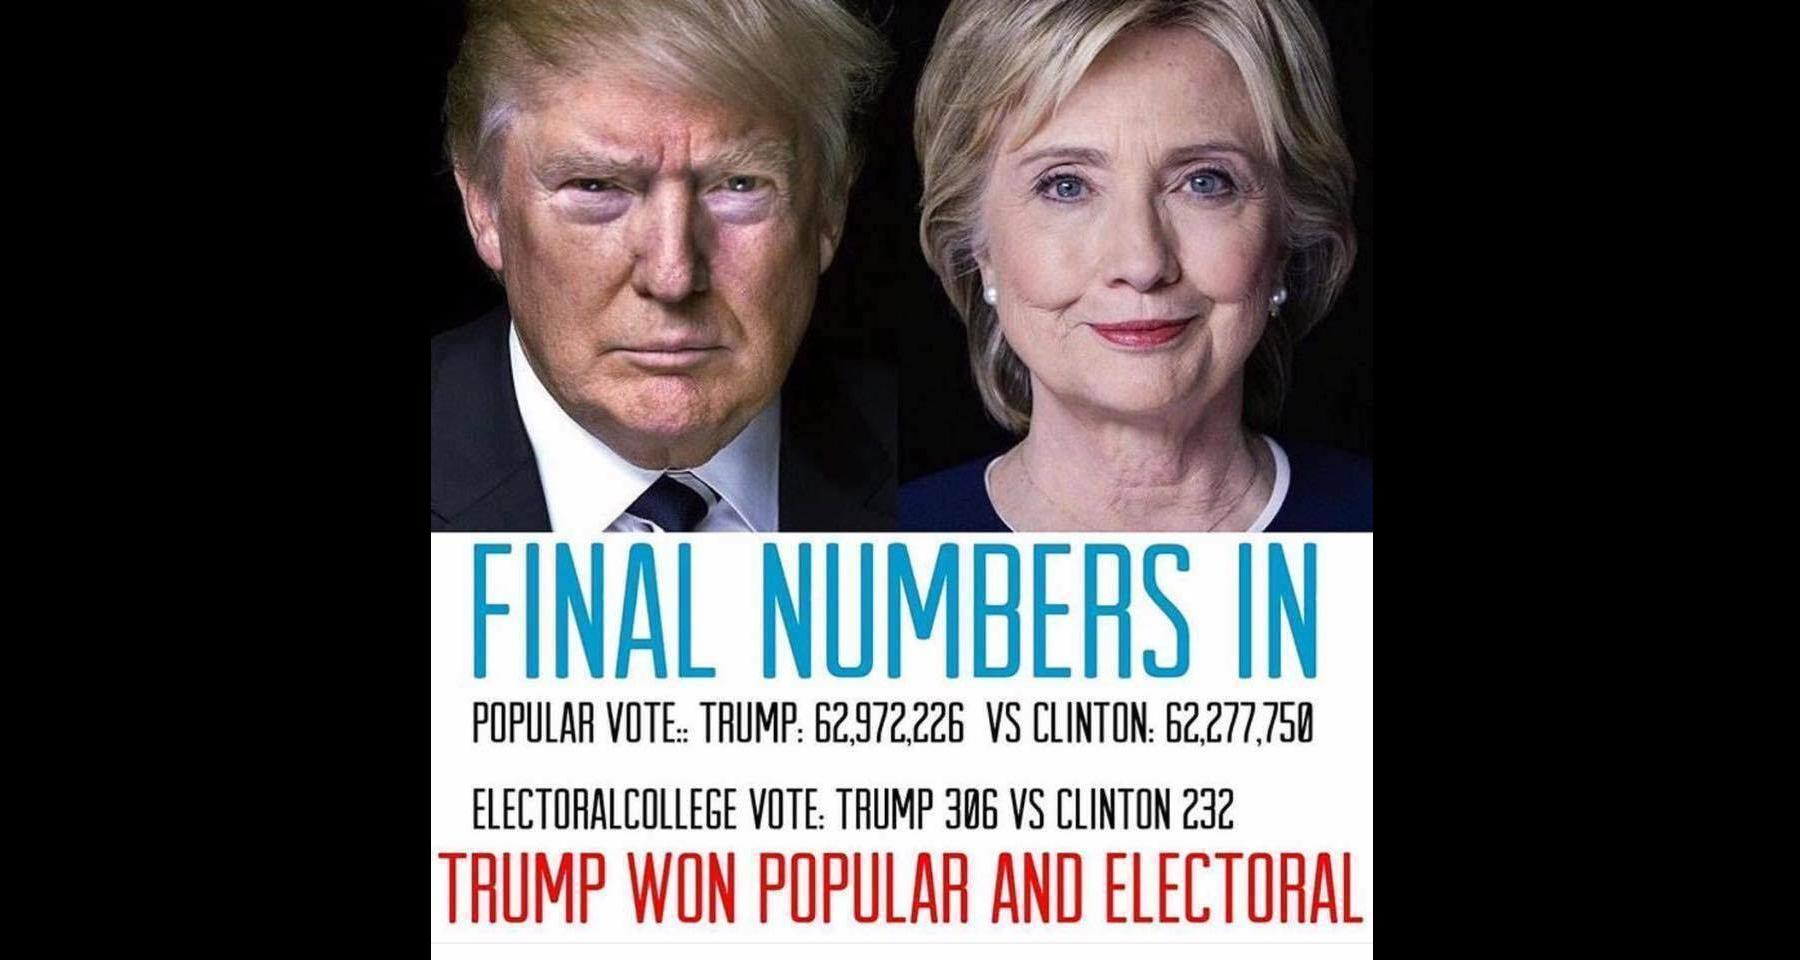 Trump Won Popular Vote of 2016 Elections